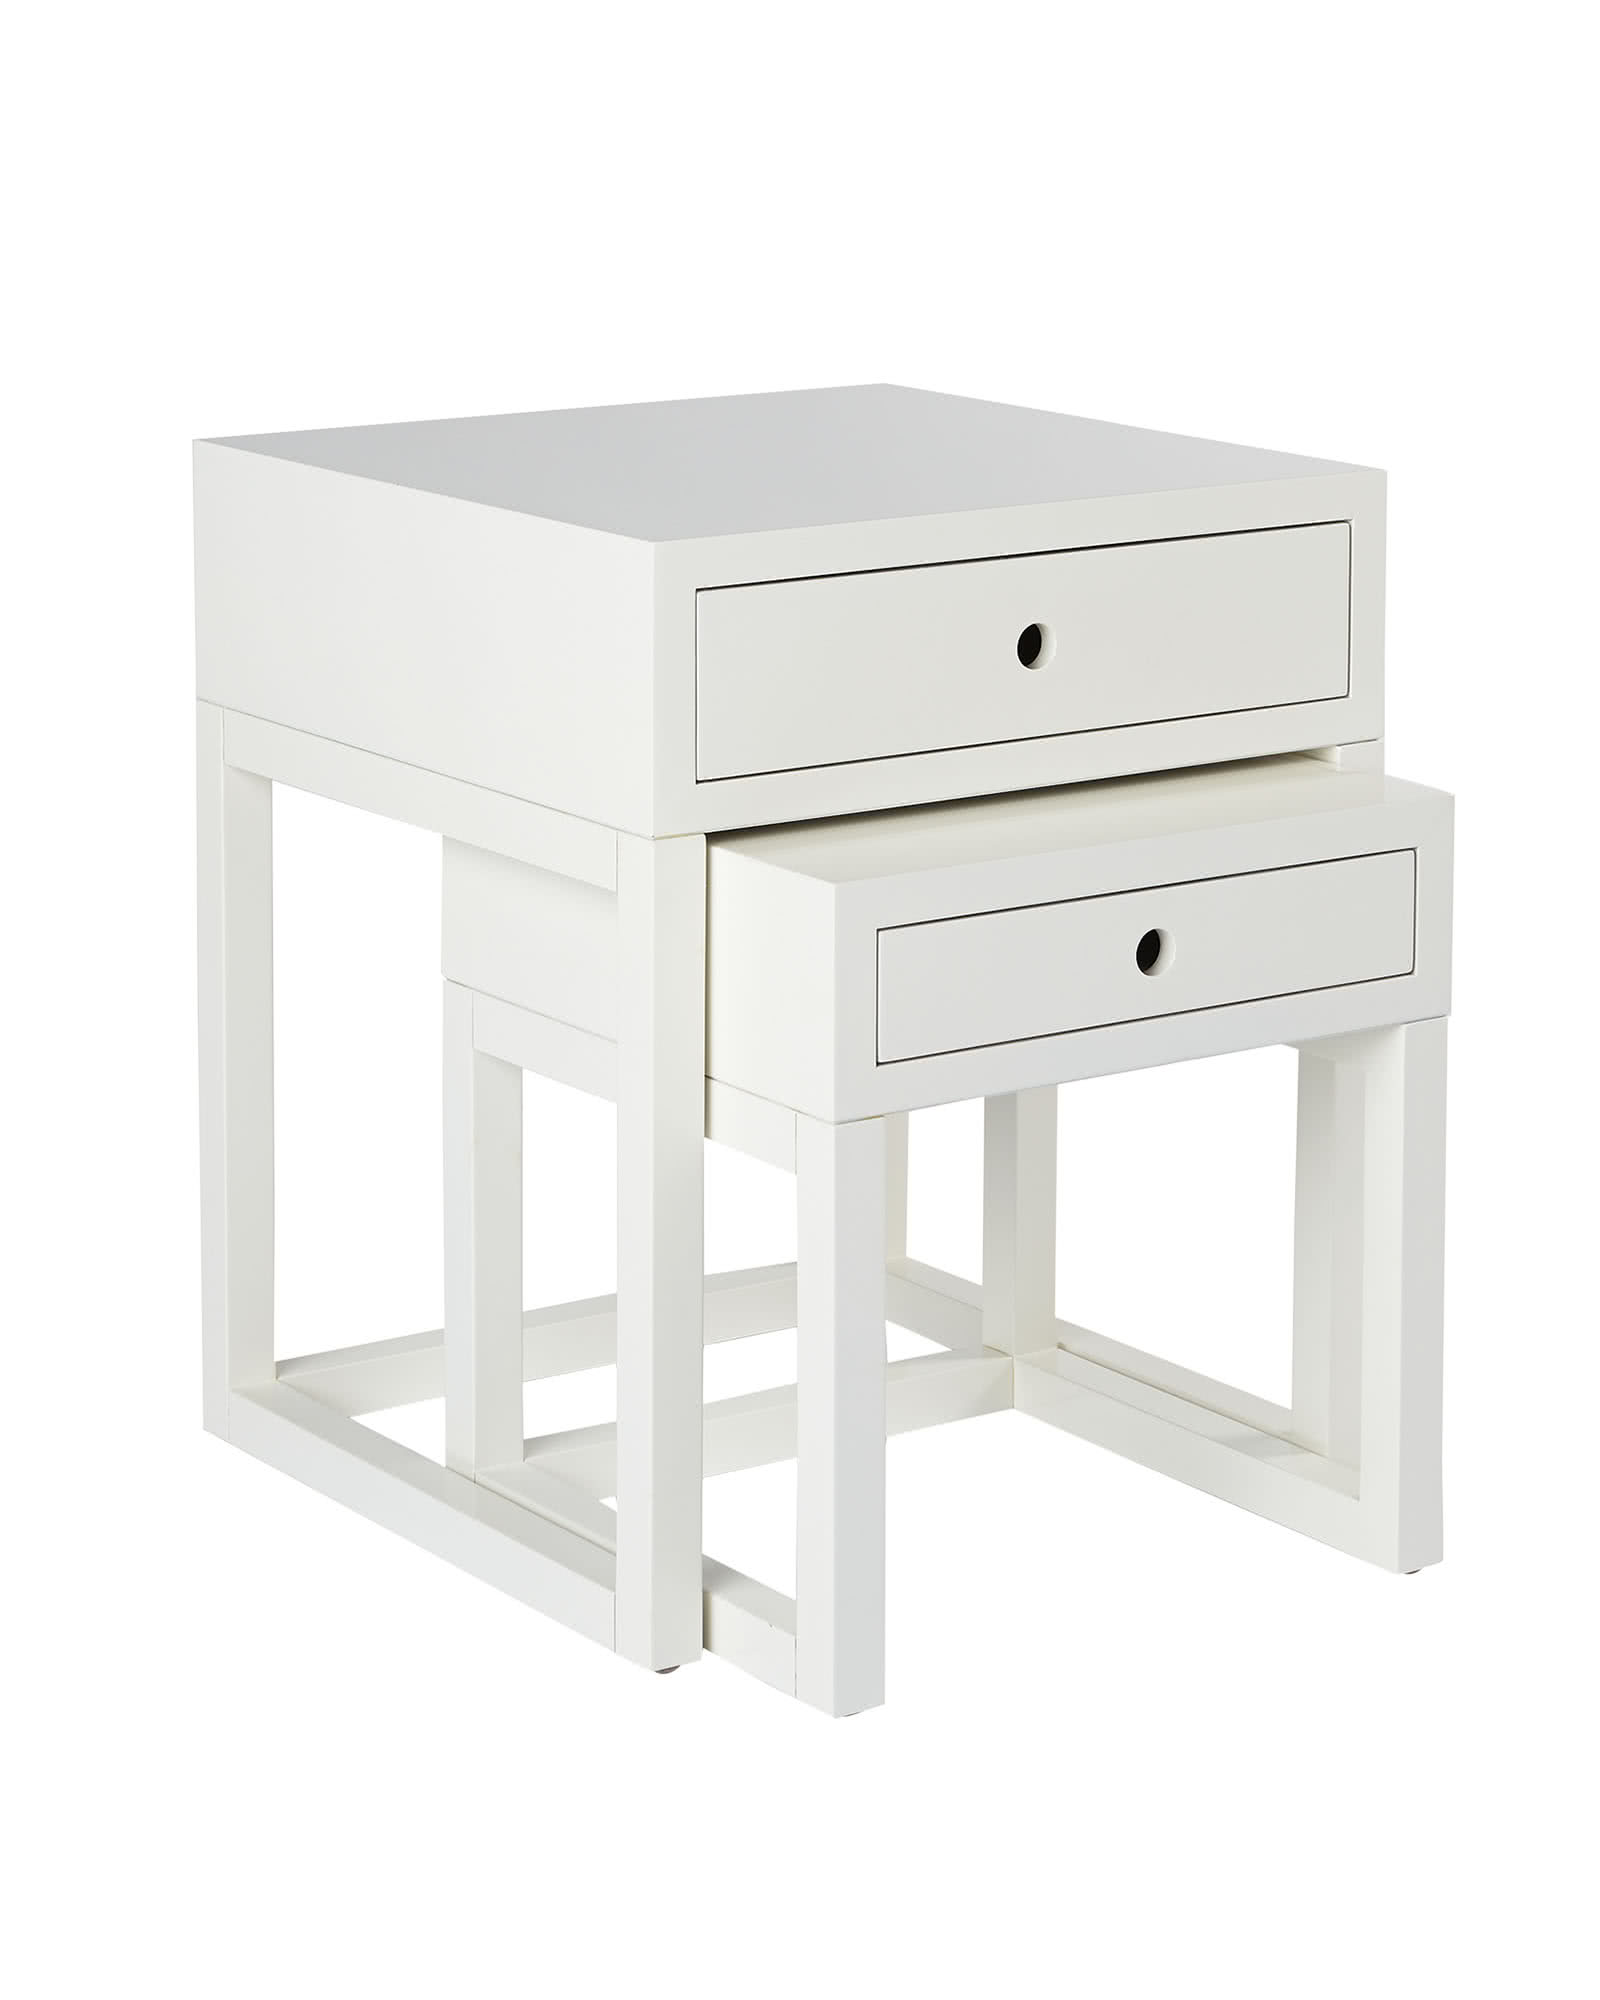 webster nesting tables  tables  serena and lily - webster nesting tables  white